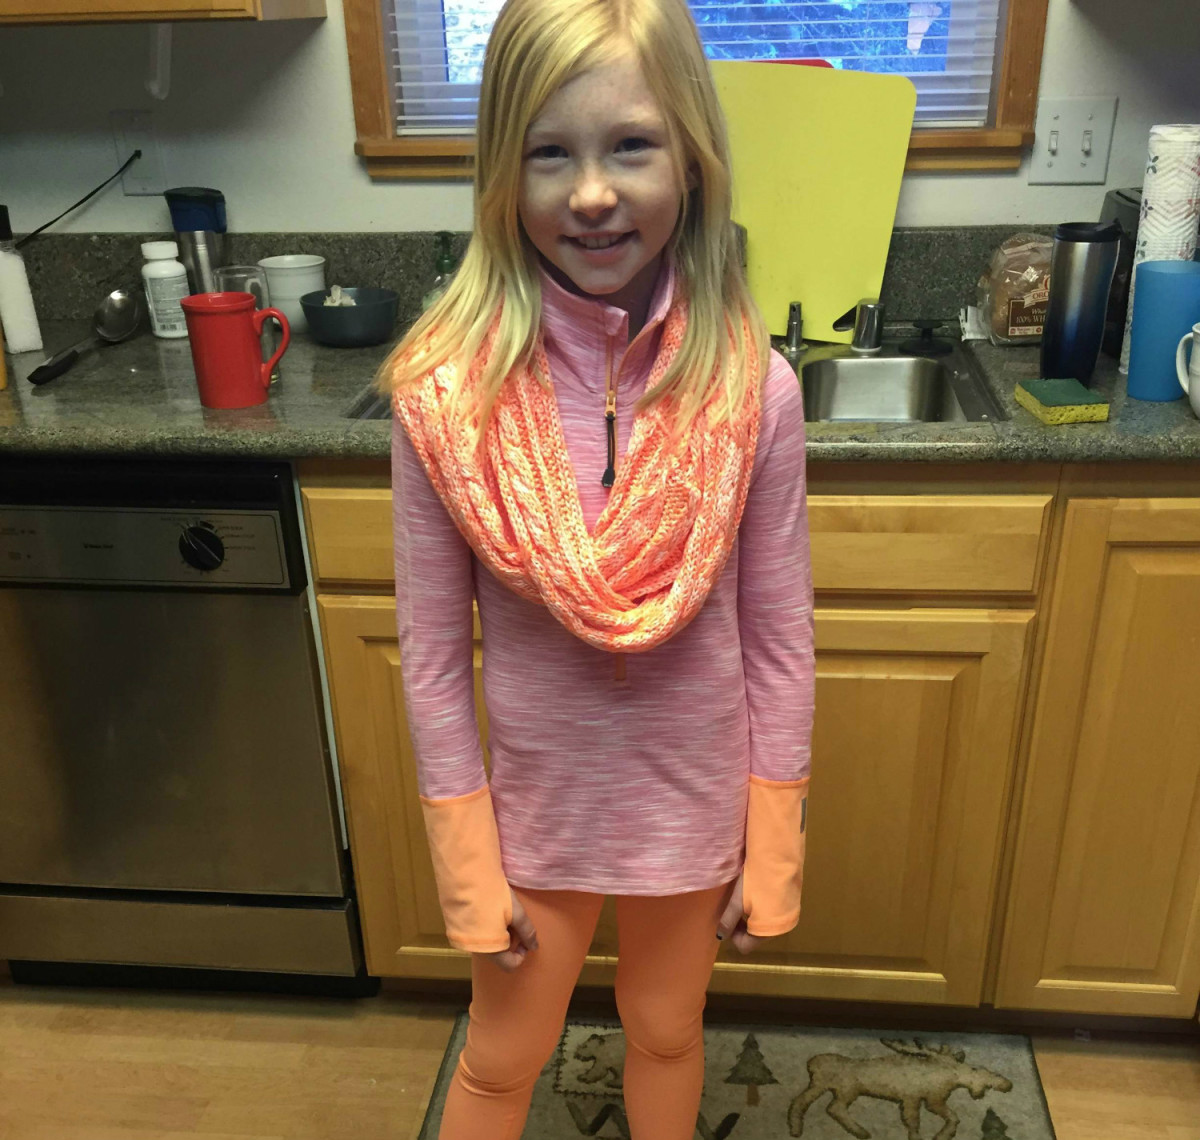 A fun scarf is always a great gift for a young girl.